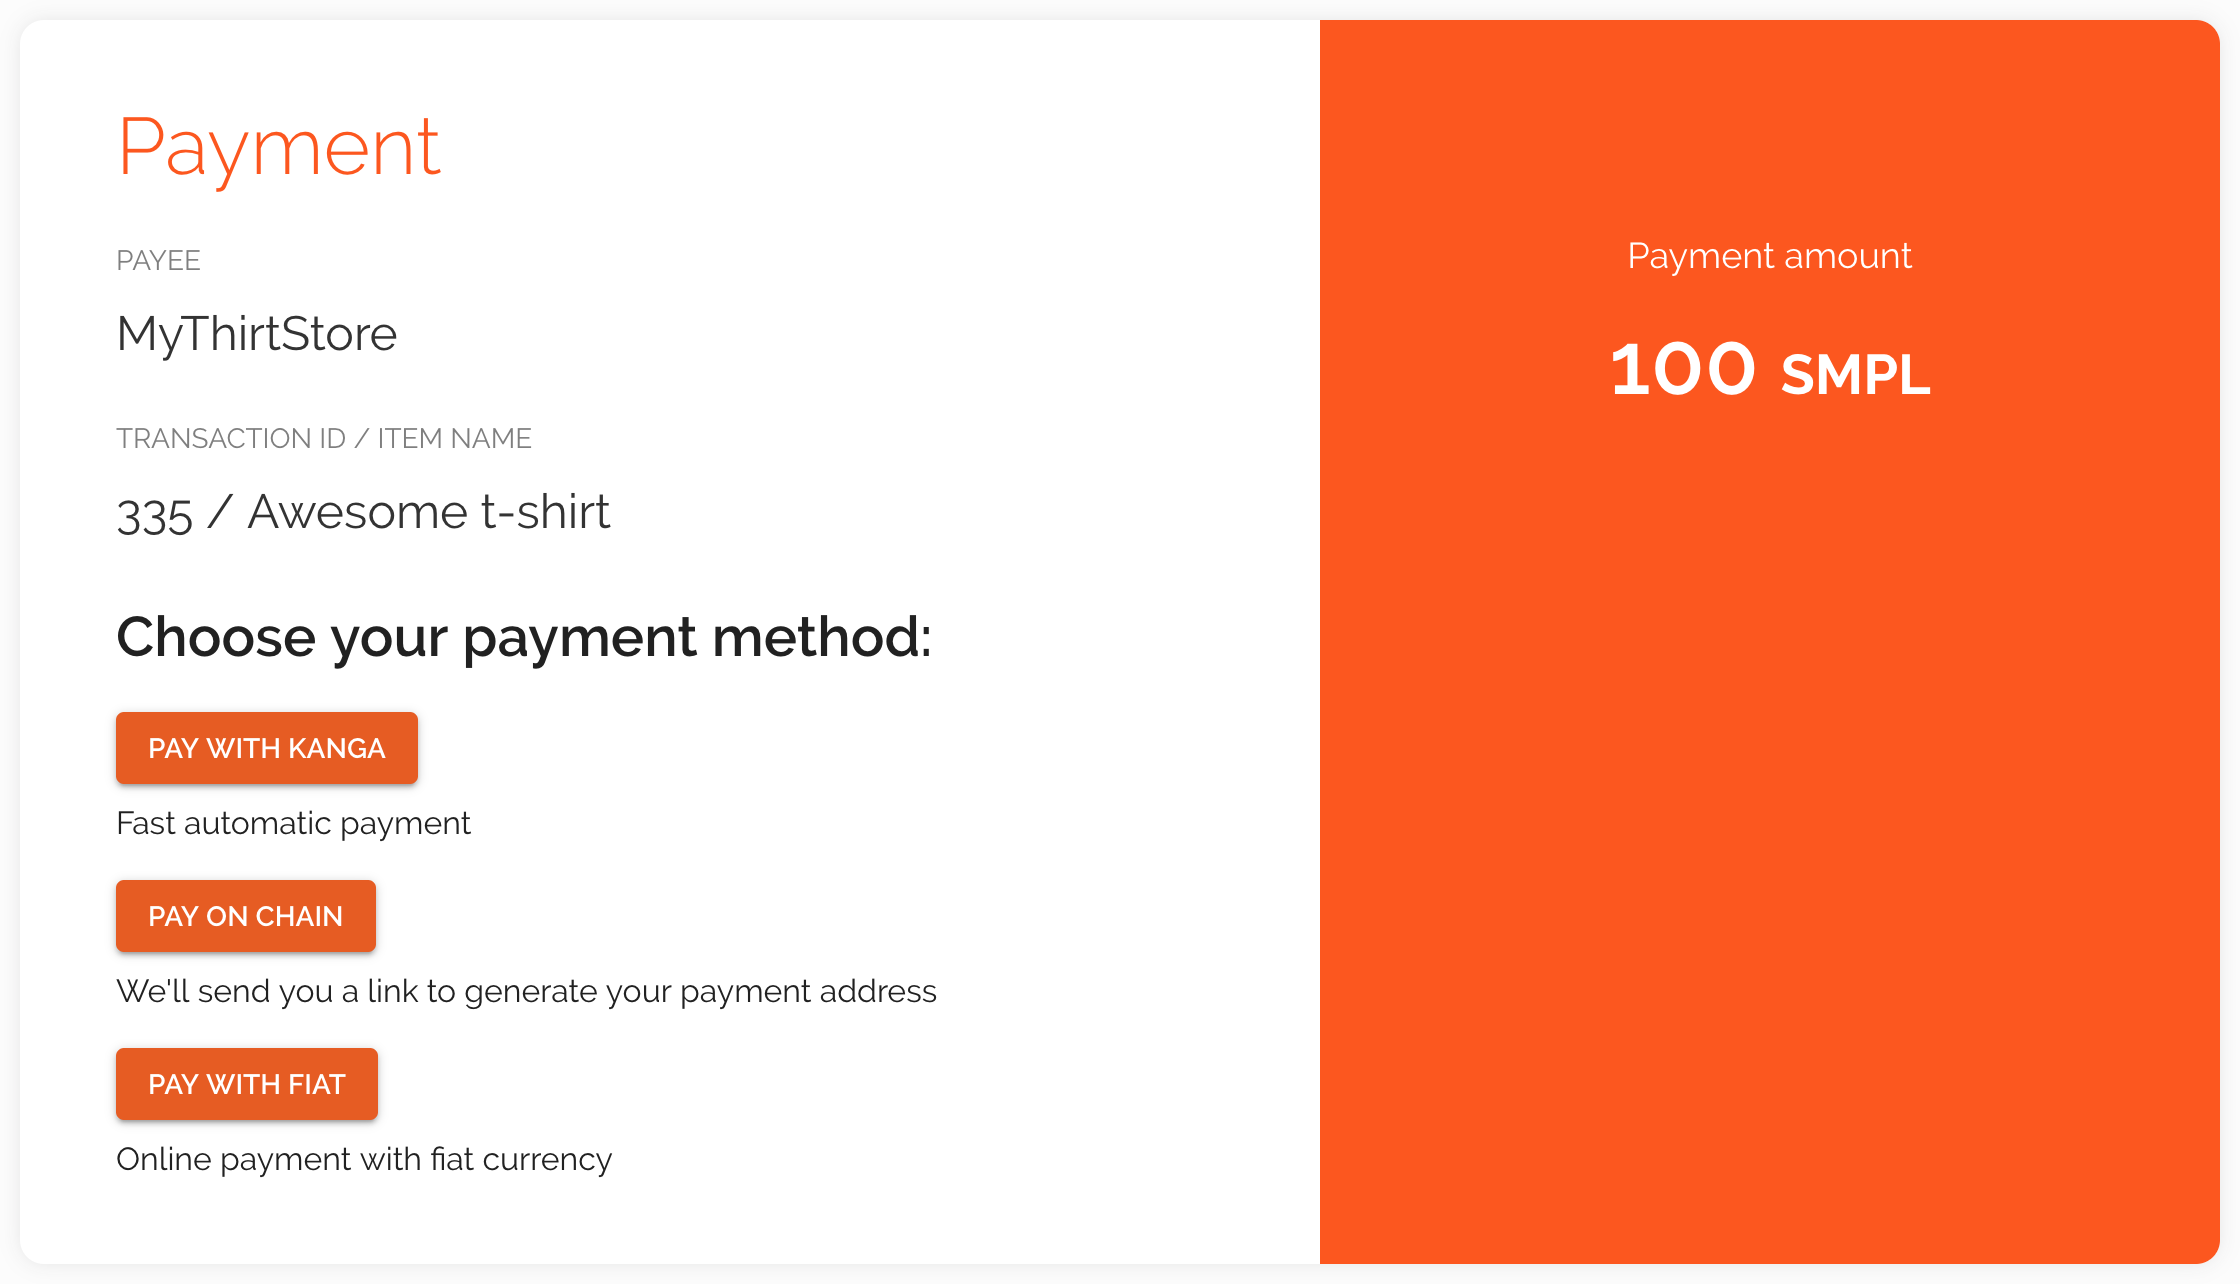 TPG payment method selection